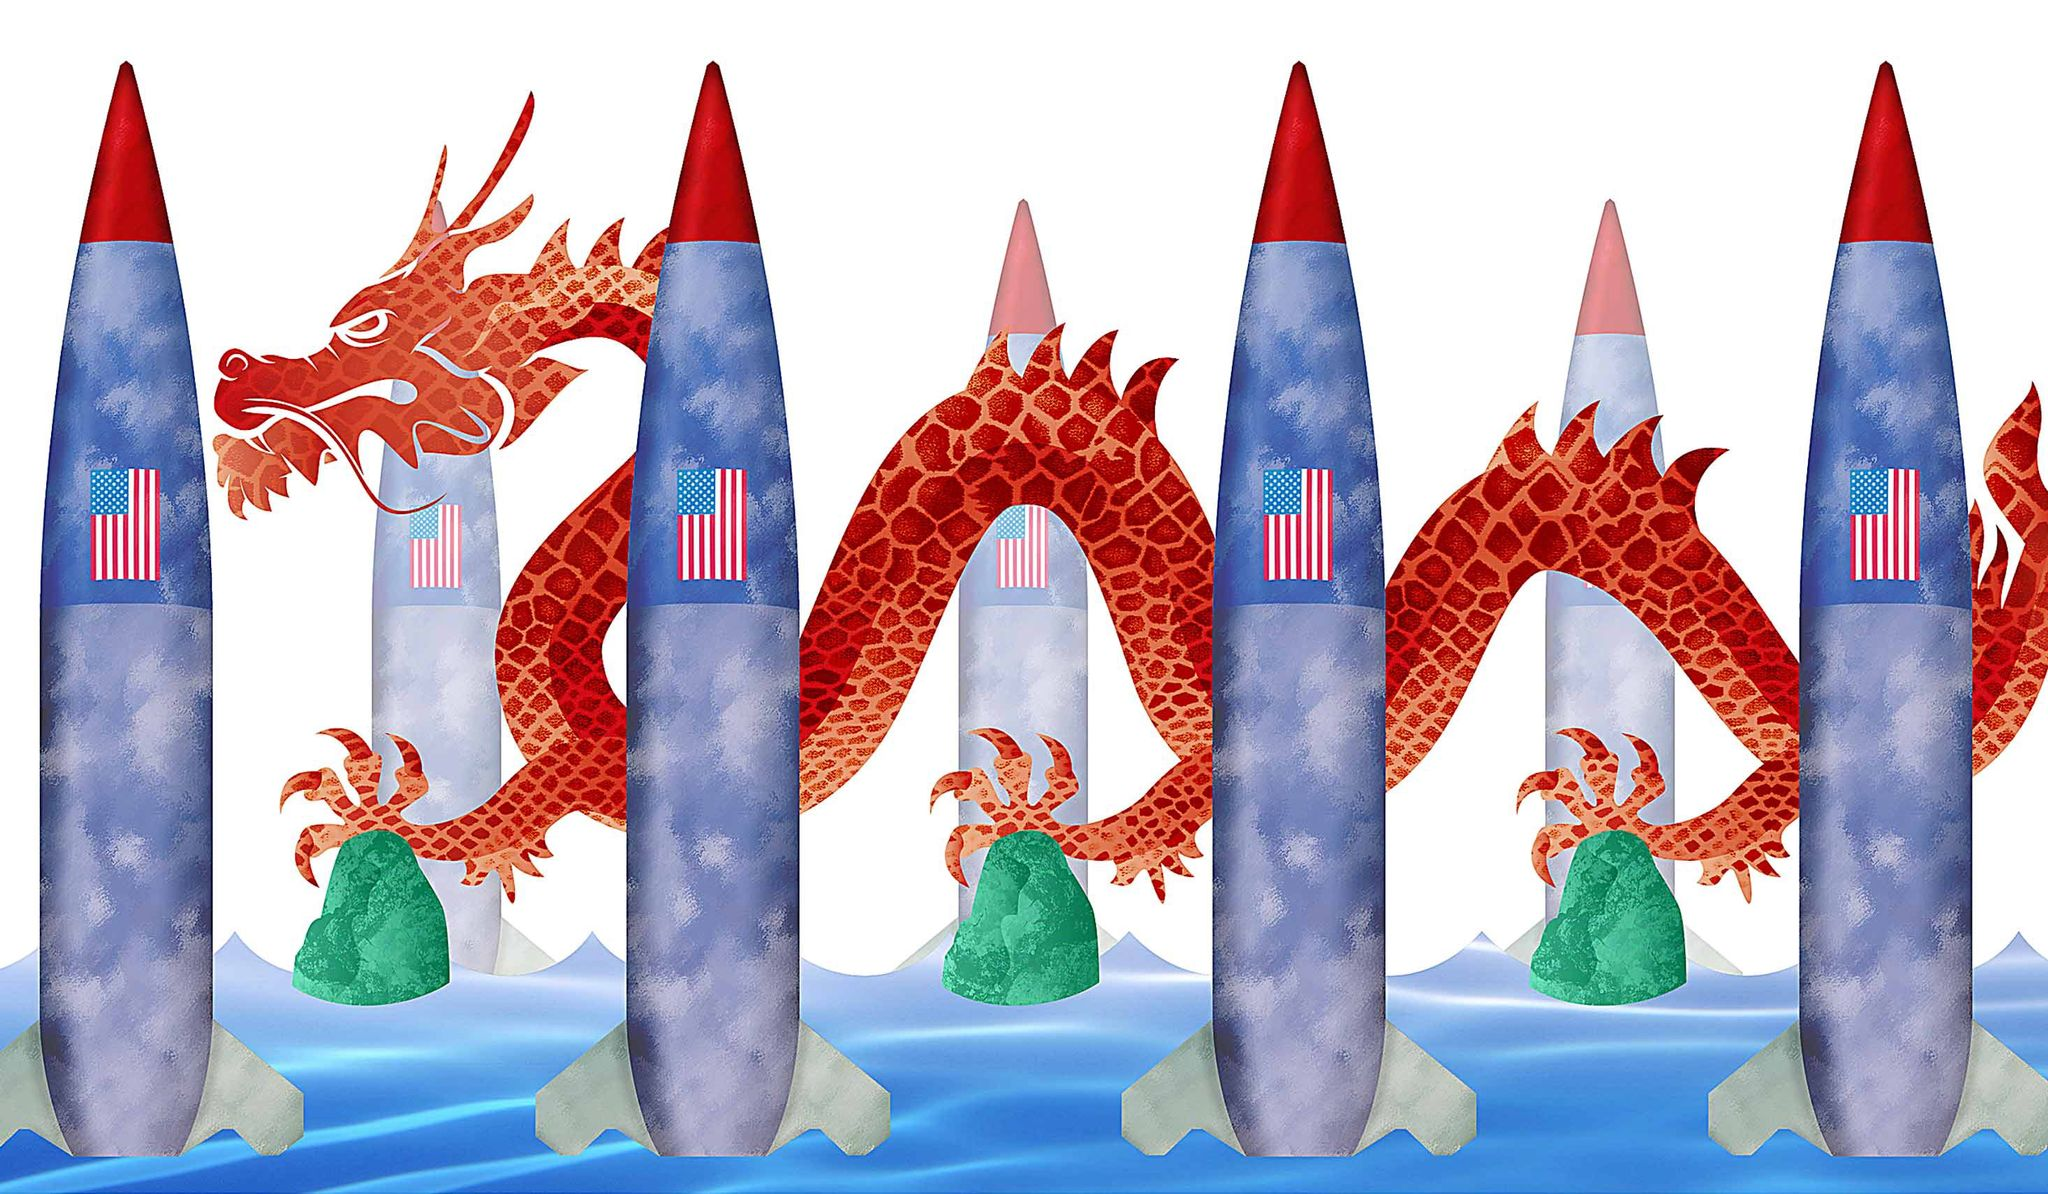 An American 'wall of missiles' to deter China